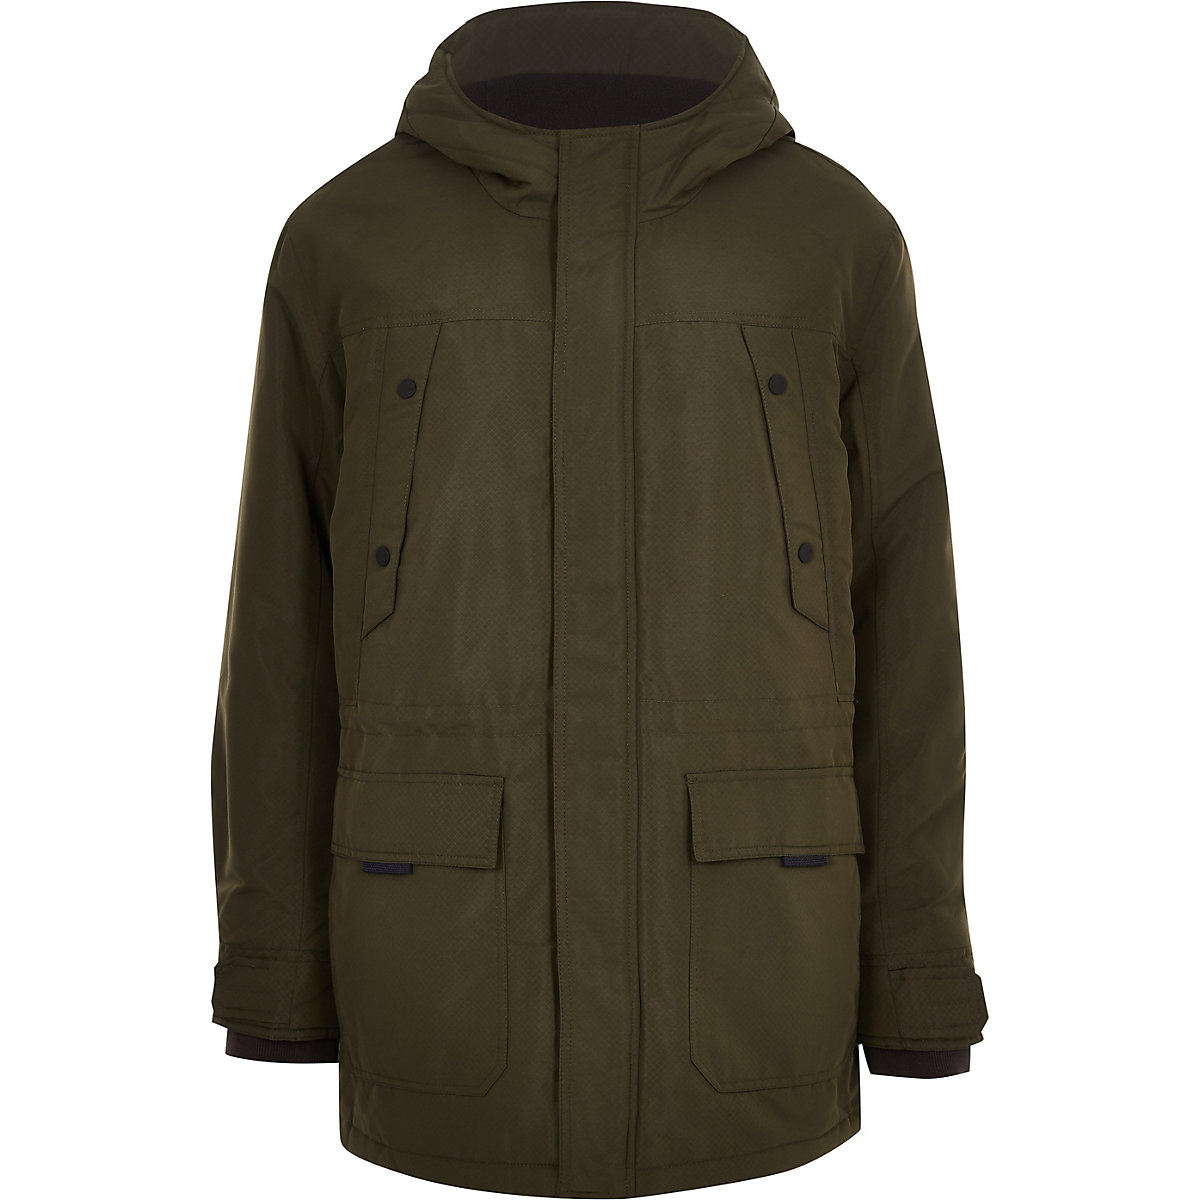 Only & Sons Big and Tall green padded parka